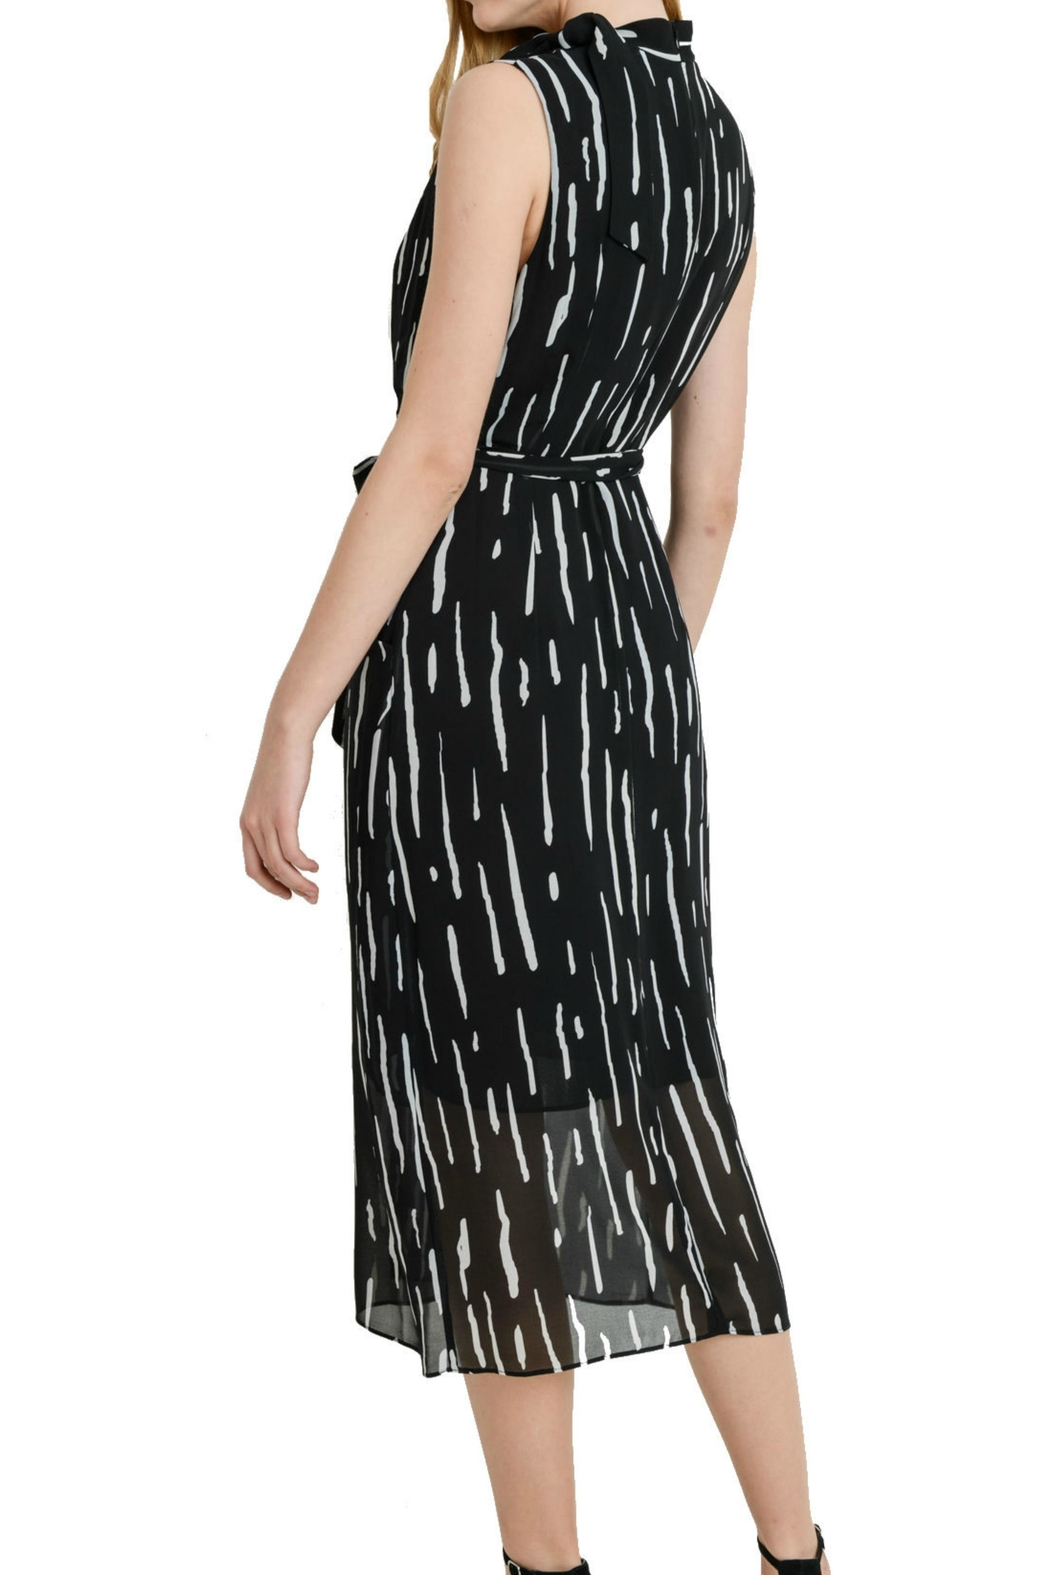 Aryeh Sleeveless Striped Dress - Front Full Image